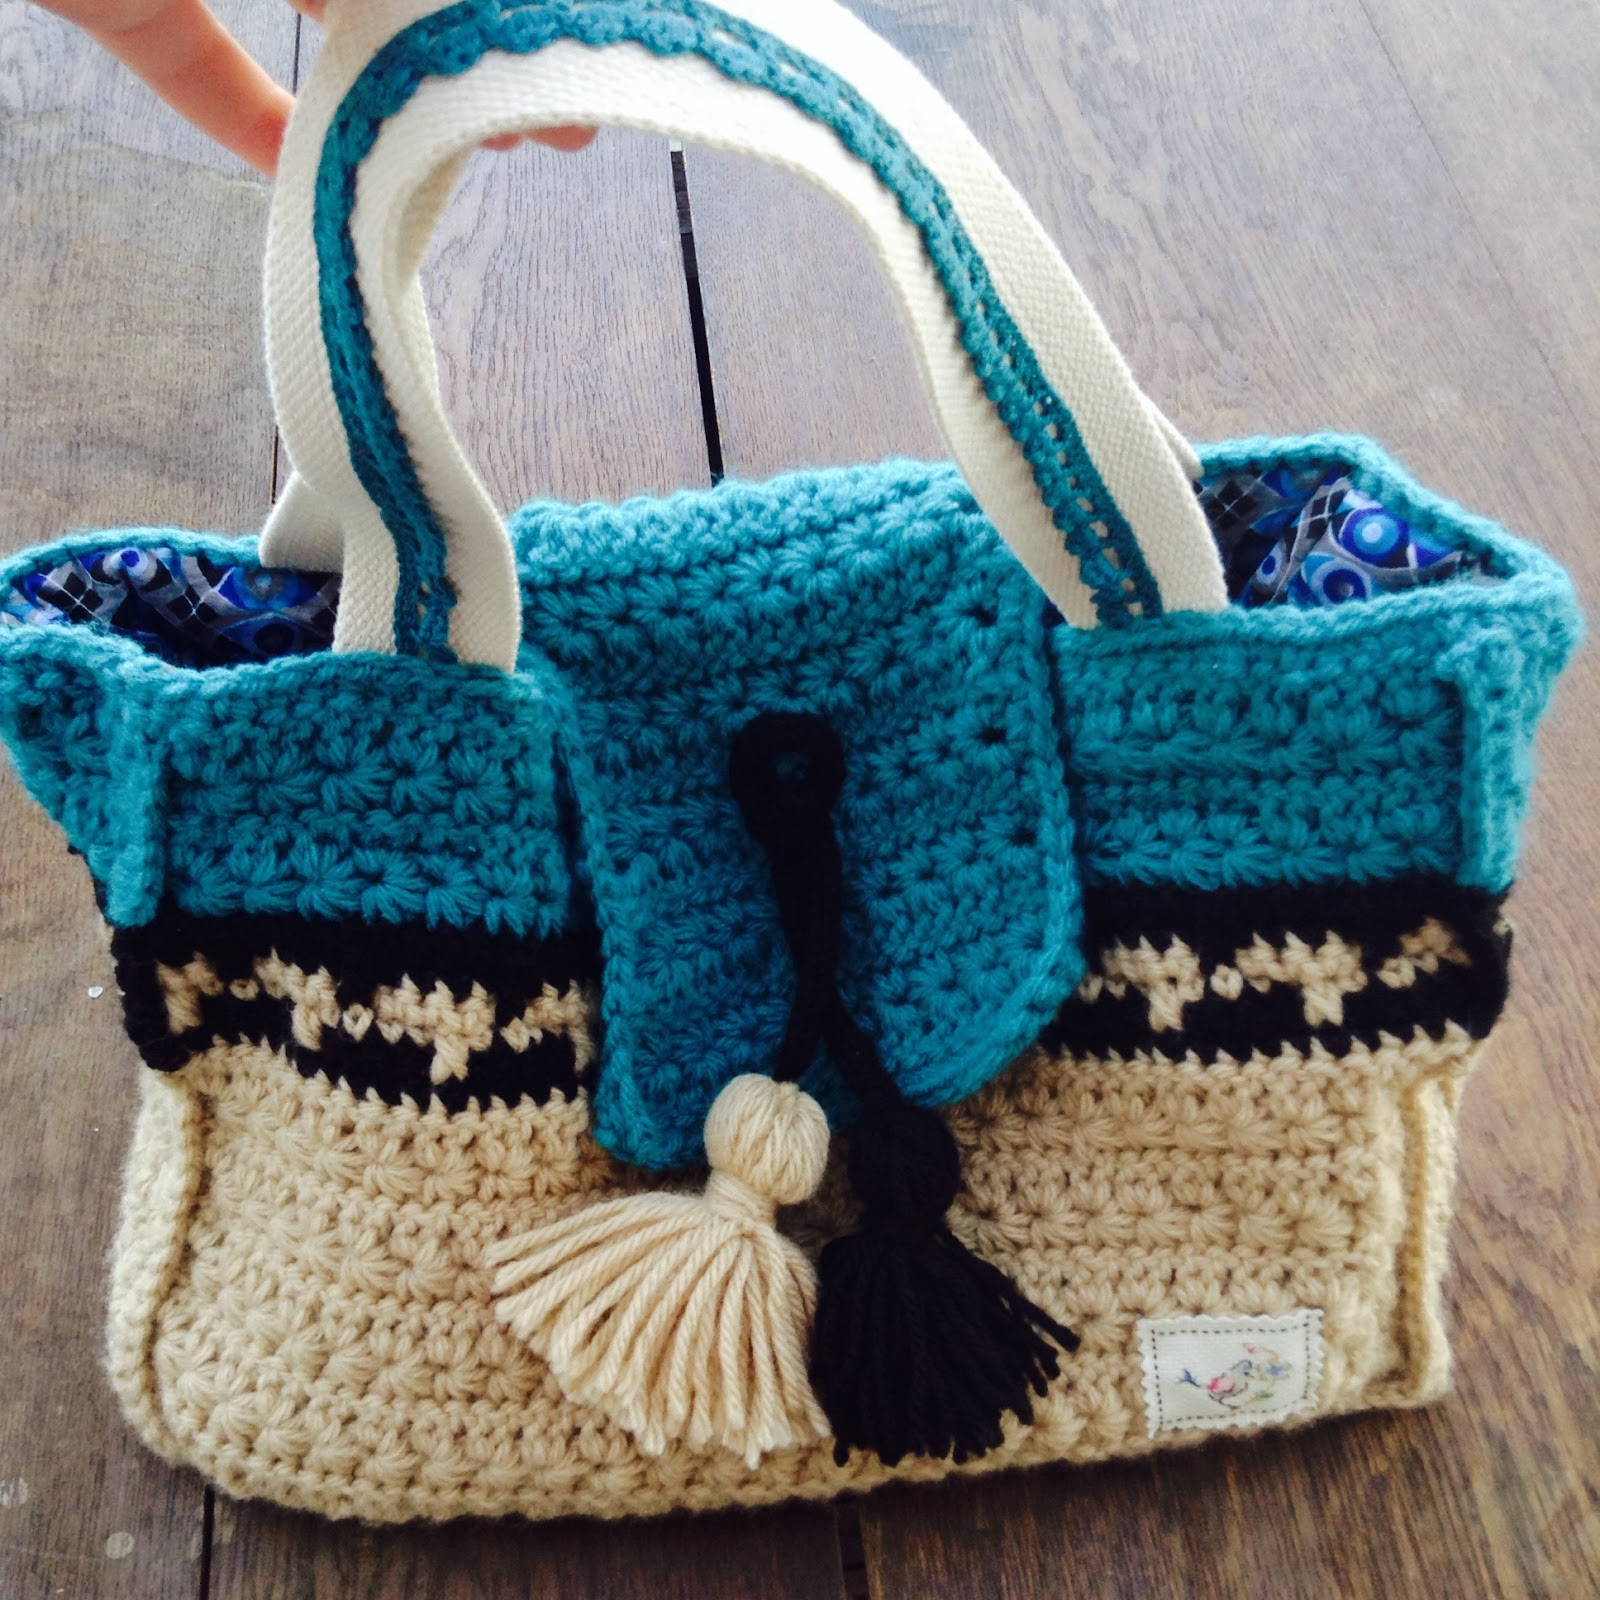 sac en crochet point étoile